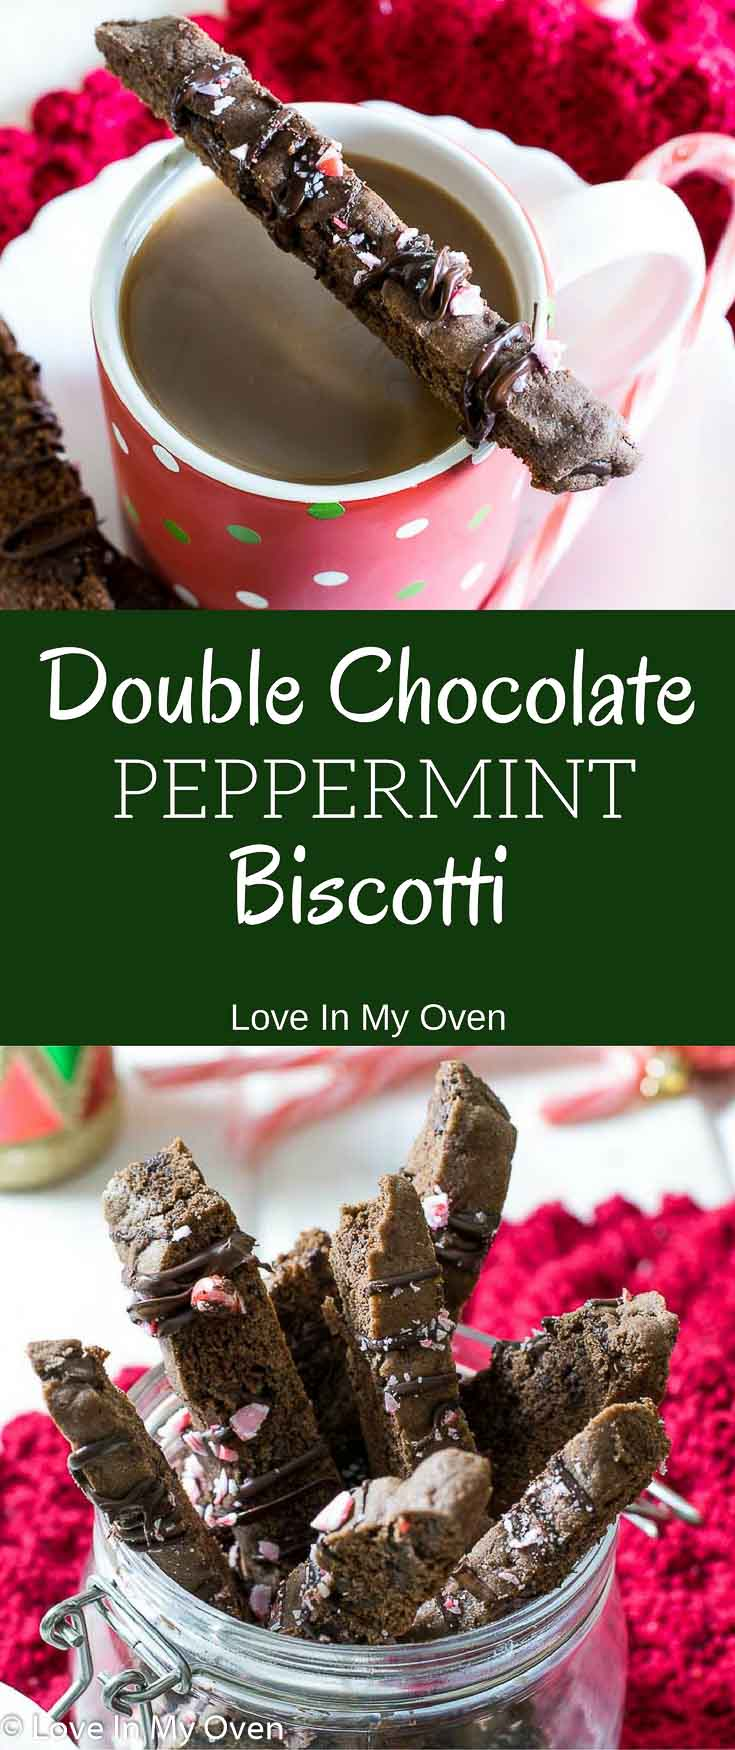 biscotti, holiday baking, double chocolate, peppermint, cookie, chocolate peppermint, Christmas, coffee, snacking, breakfast cookie